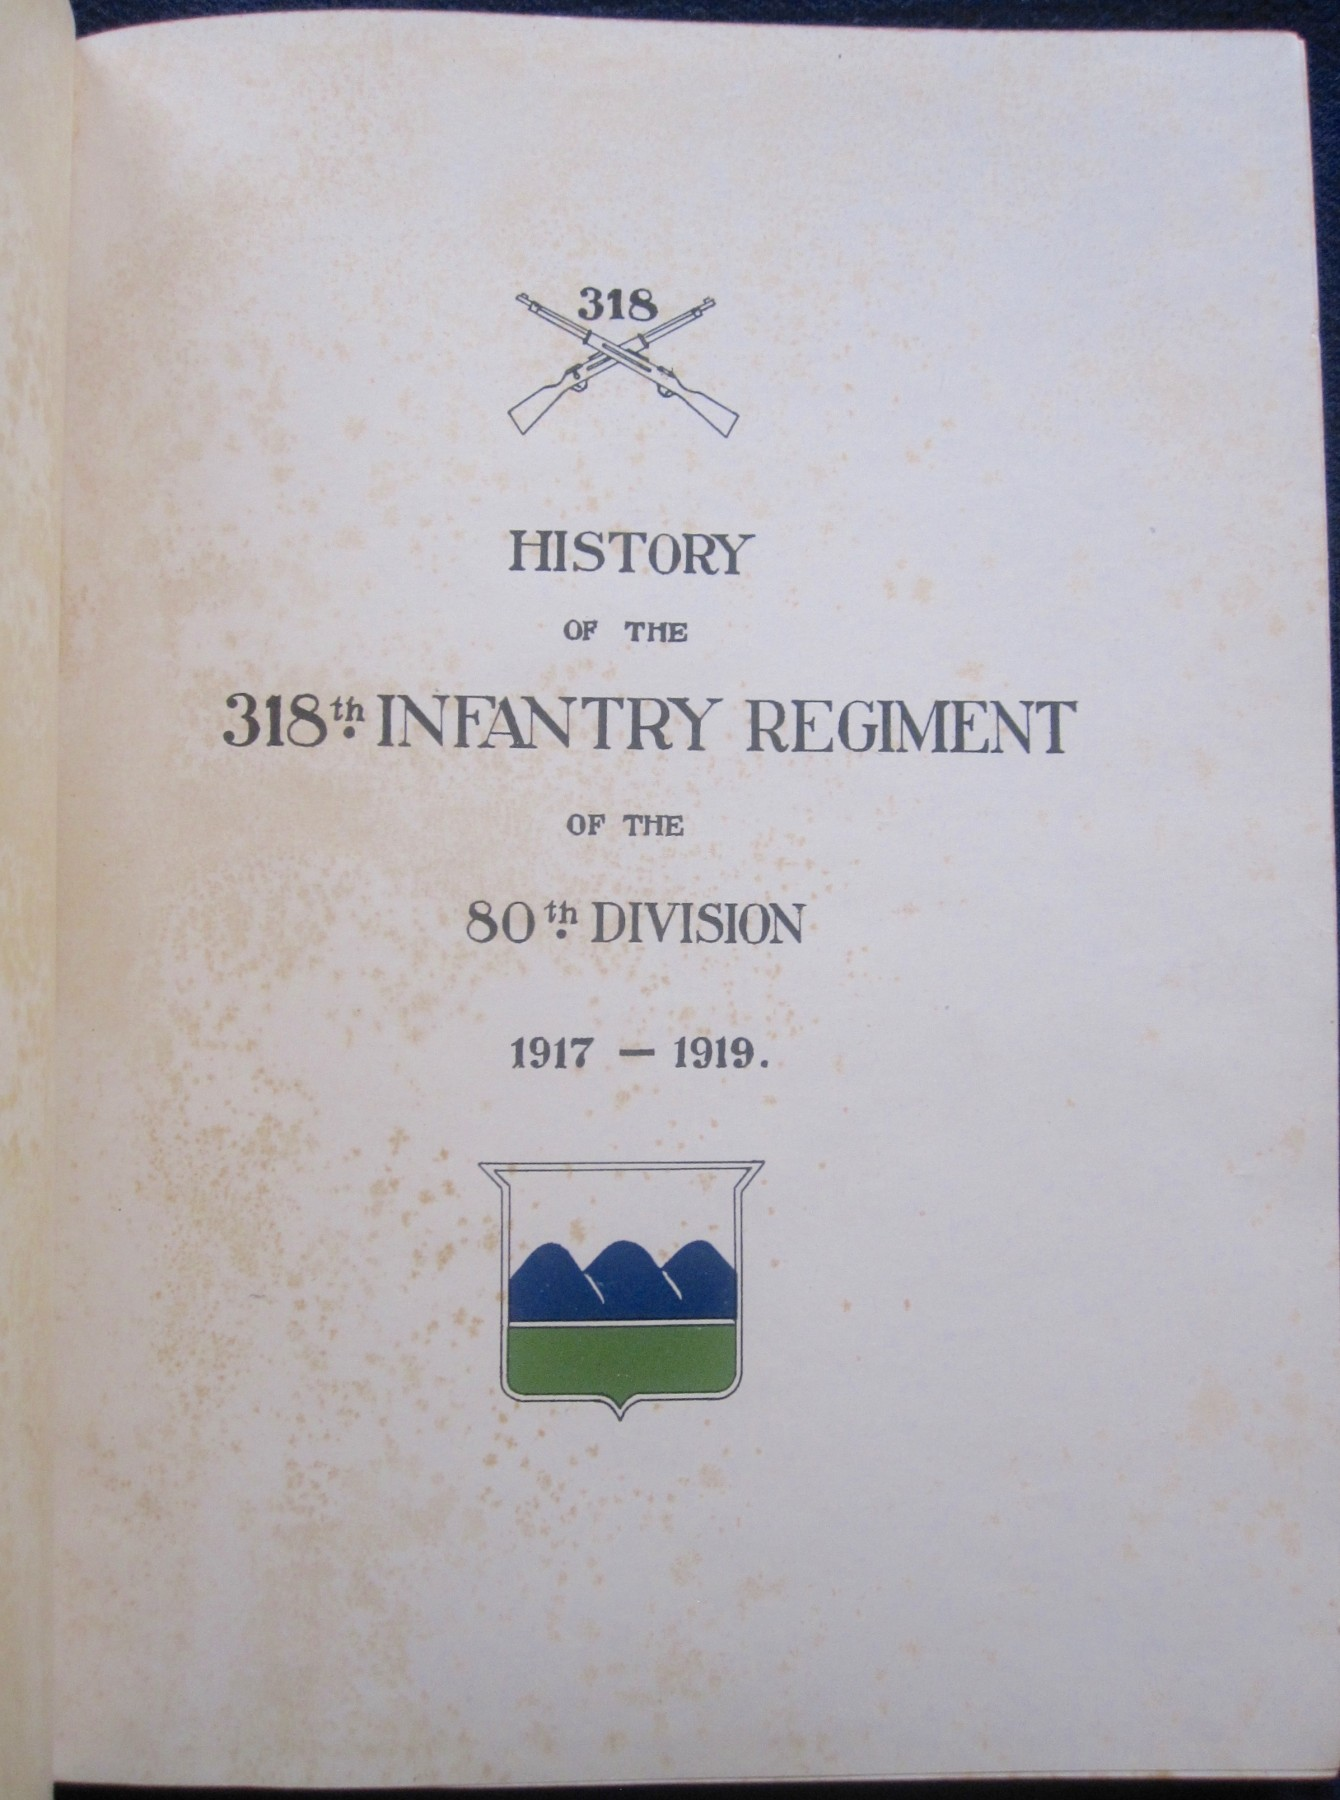 history and types of regiment units Regiment definition, a unit of ground forces, consisting of two or more battalions or battle groups, a headquarters unit, and certain supporting units see more.